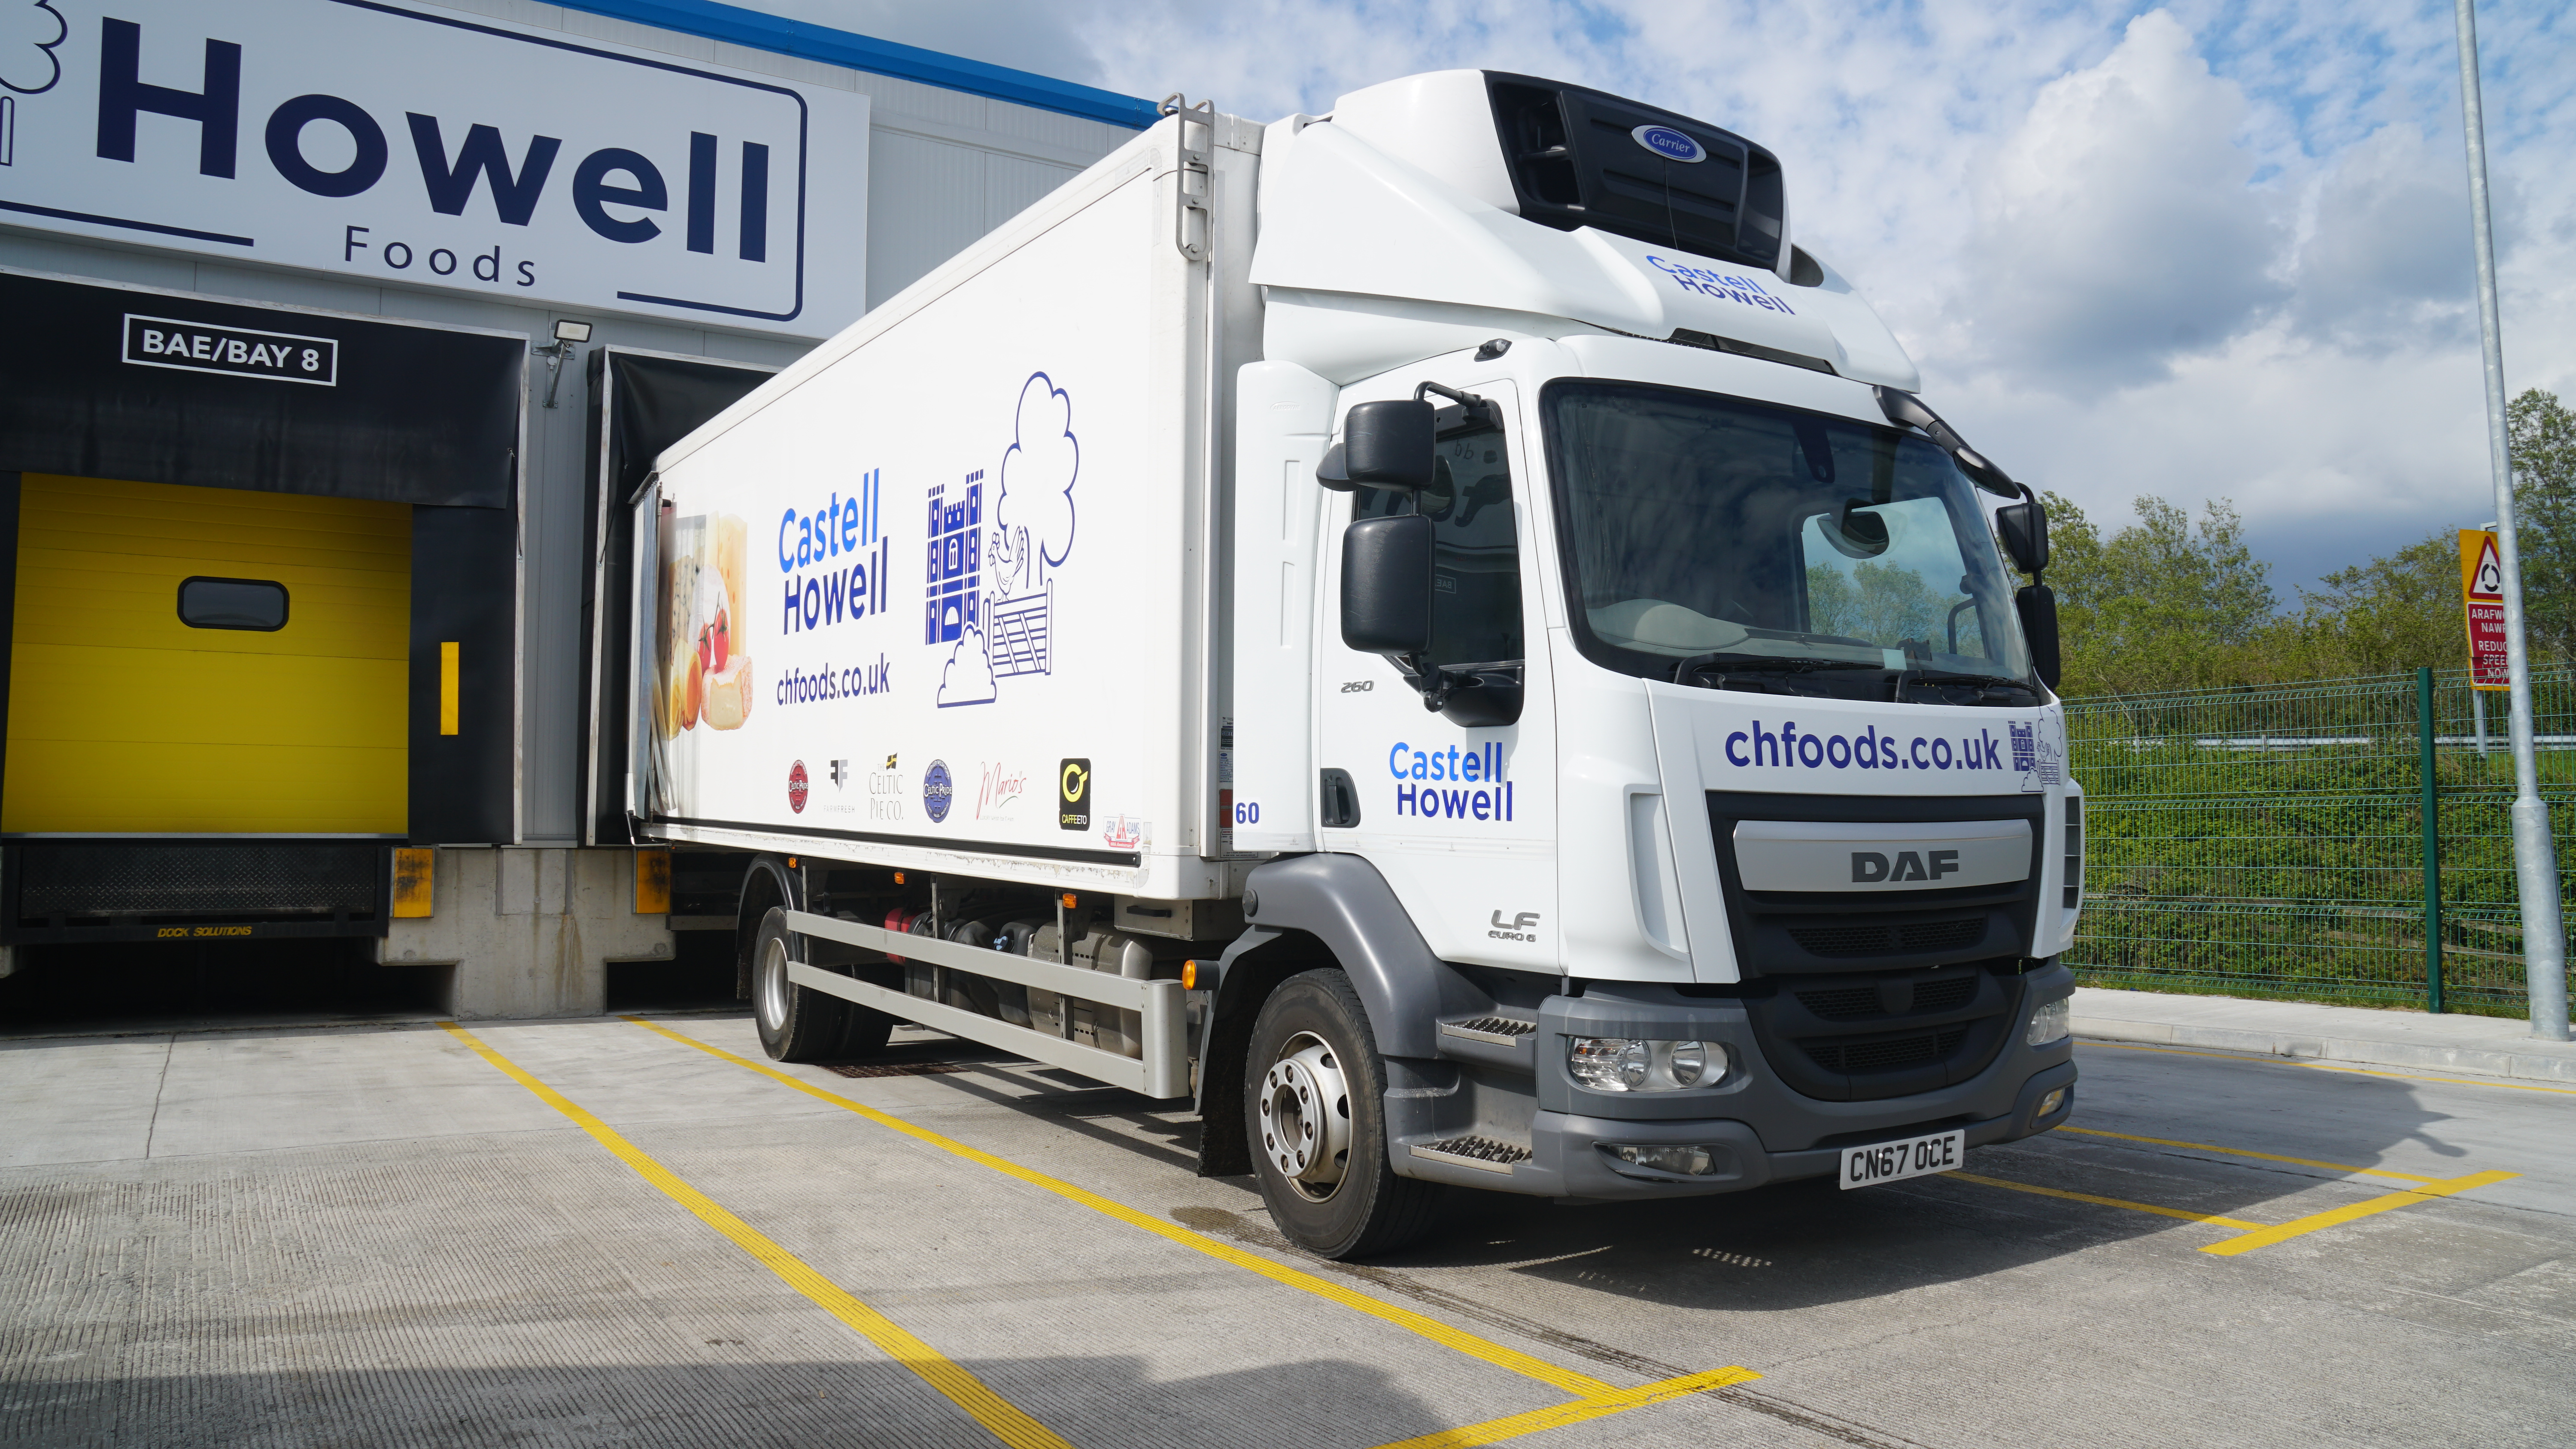 Connexas Group provides platform for food wholesaler's entire fleet